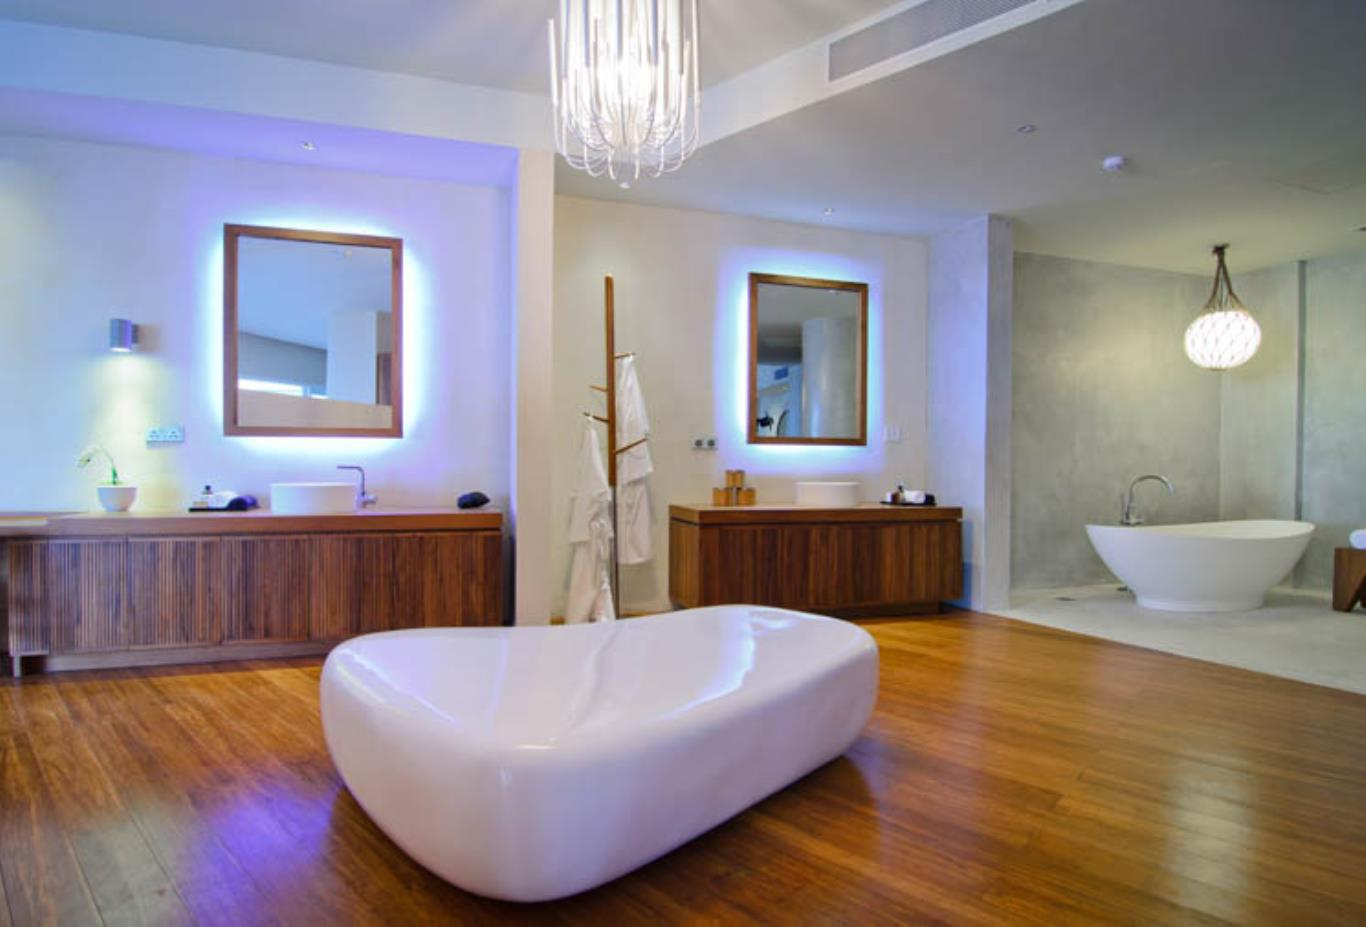 Ocean House bathroom bathtub